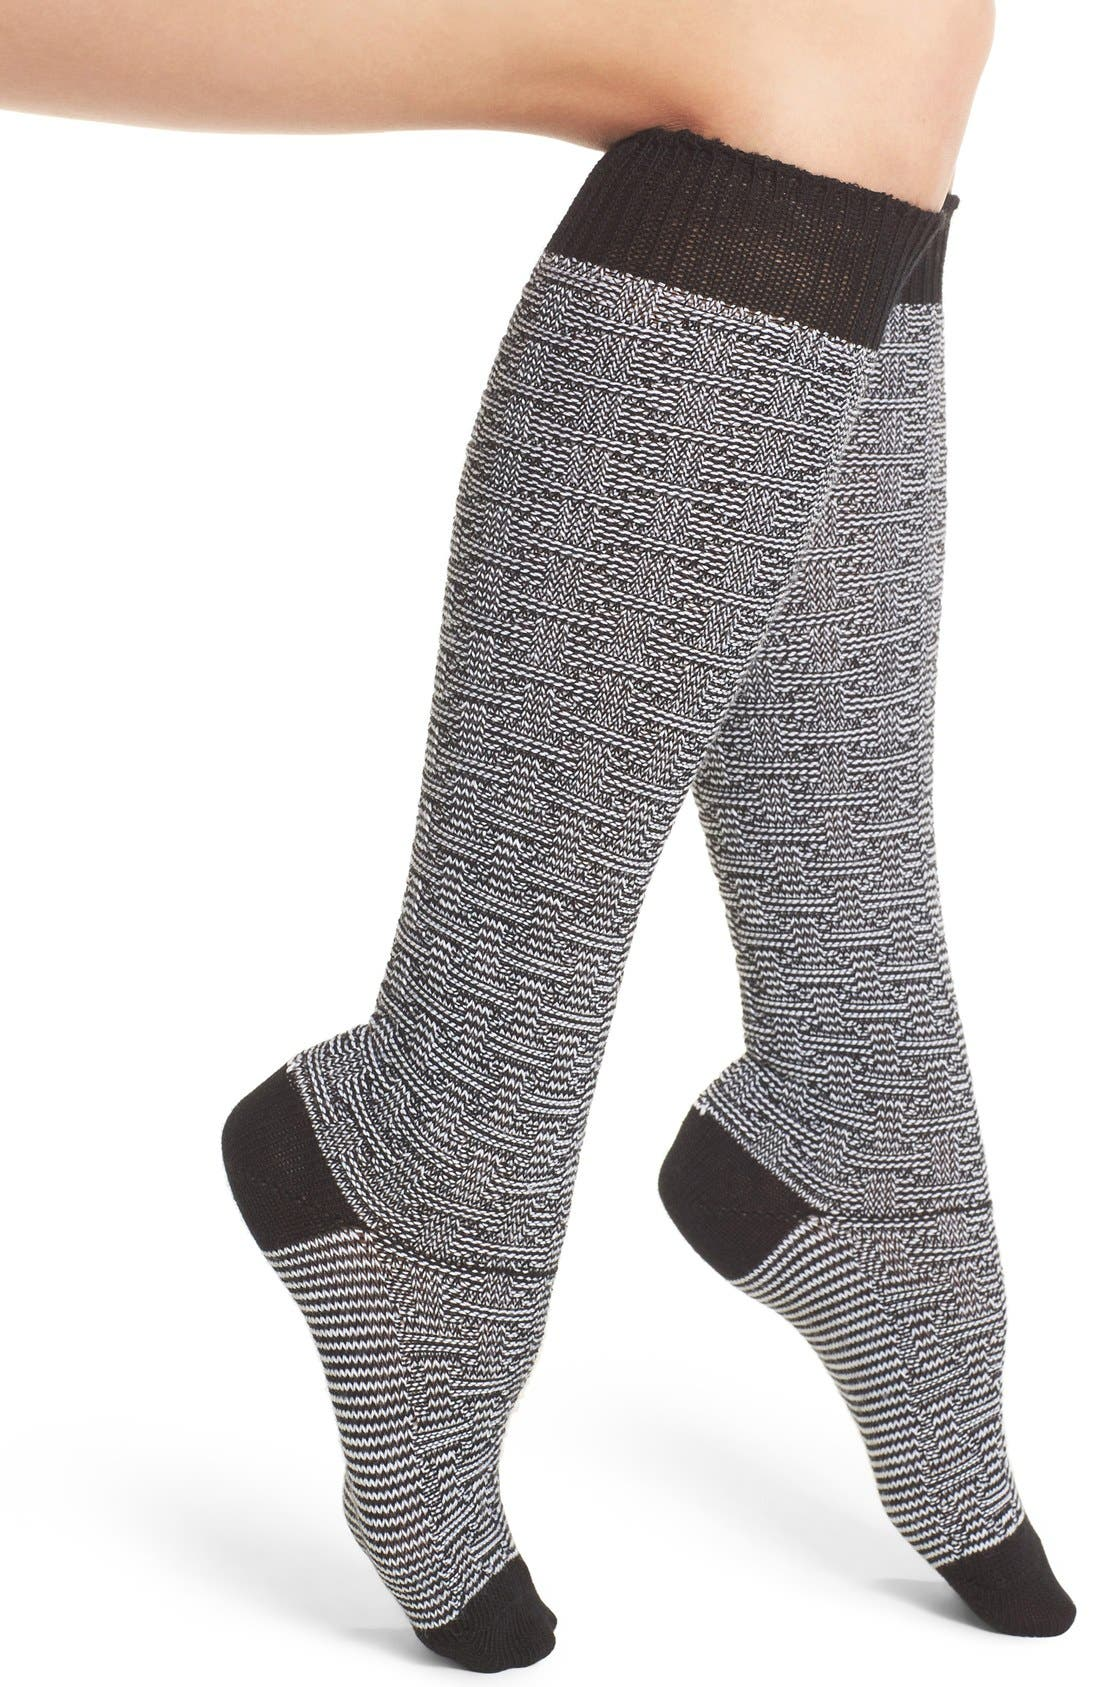 Ryn Knee High Socks,                             Main thumbnail 1, color,                             001